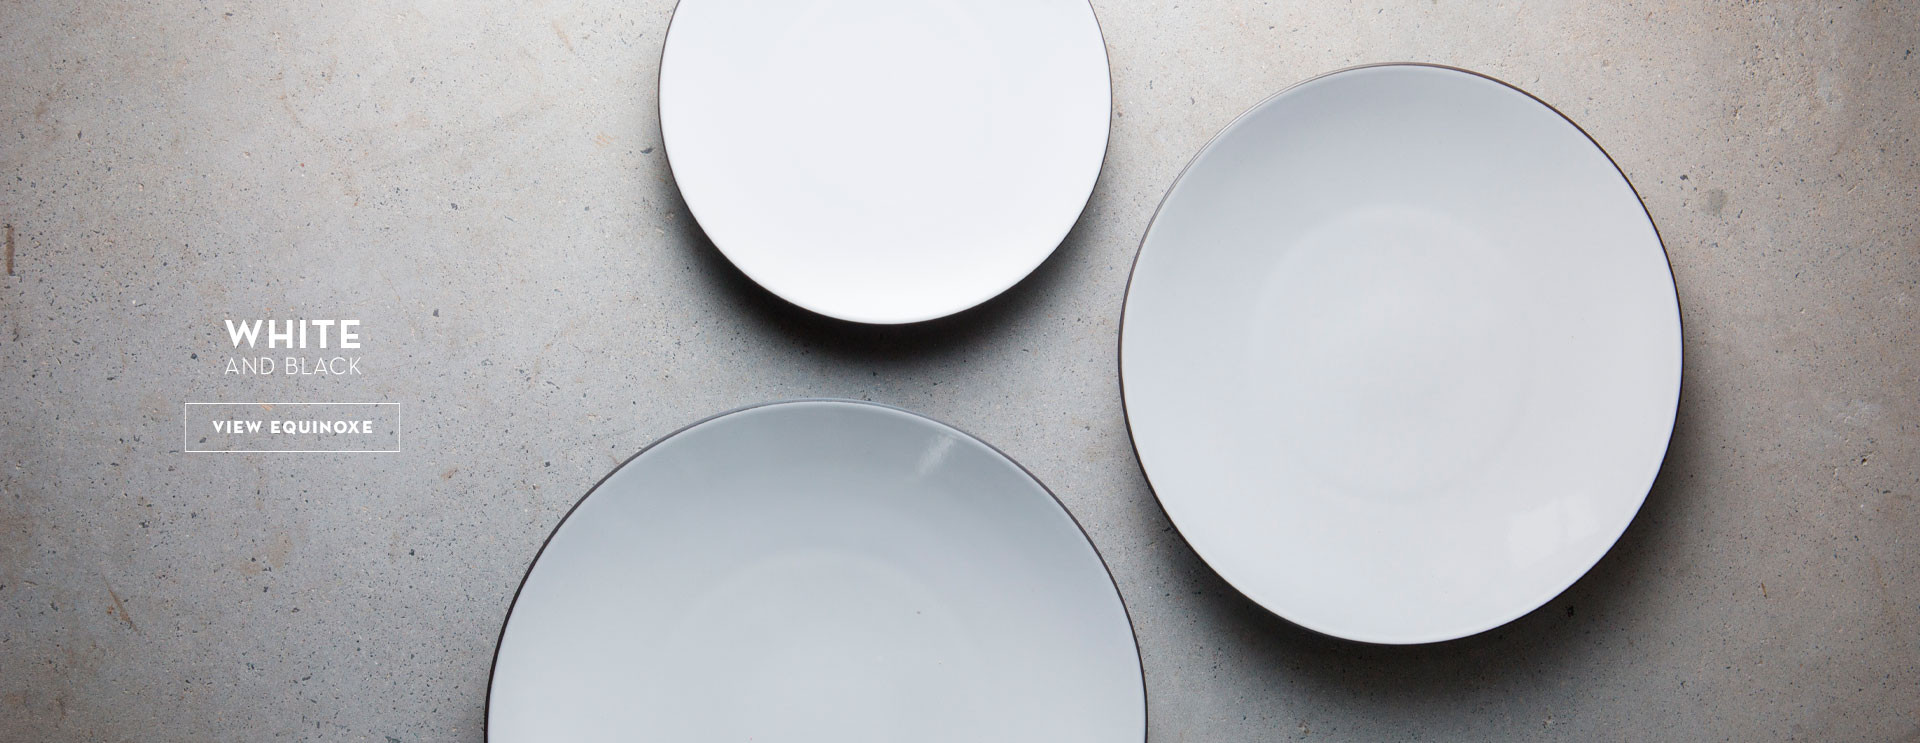 white equinoxe plates for dining in family